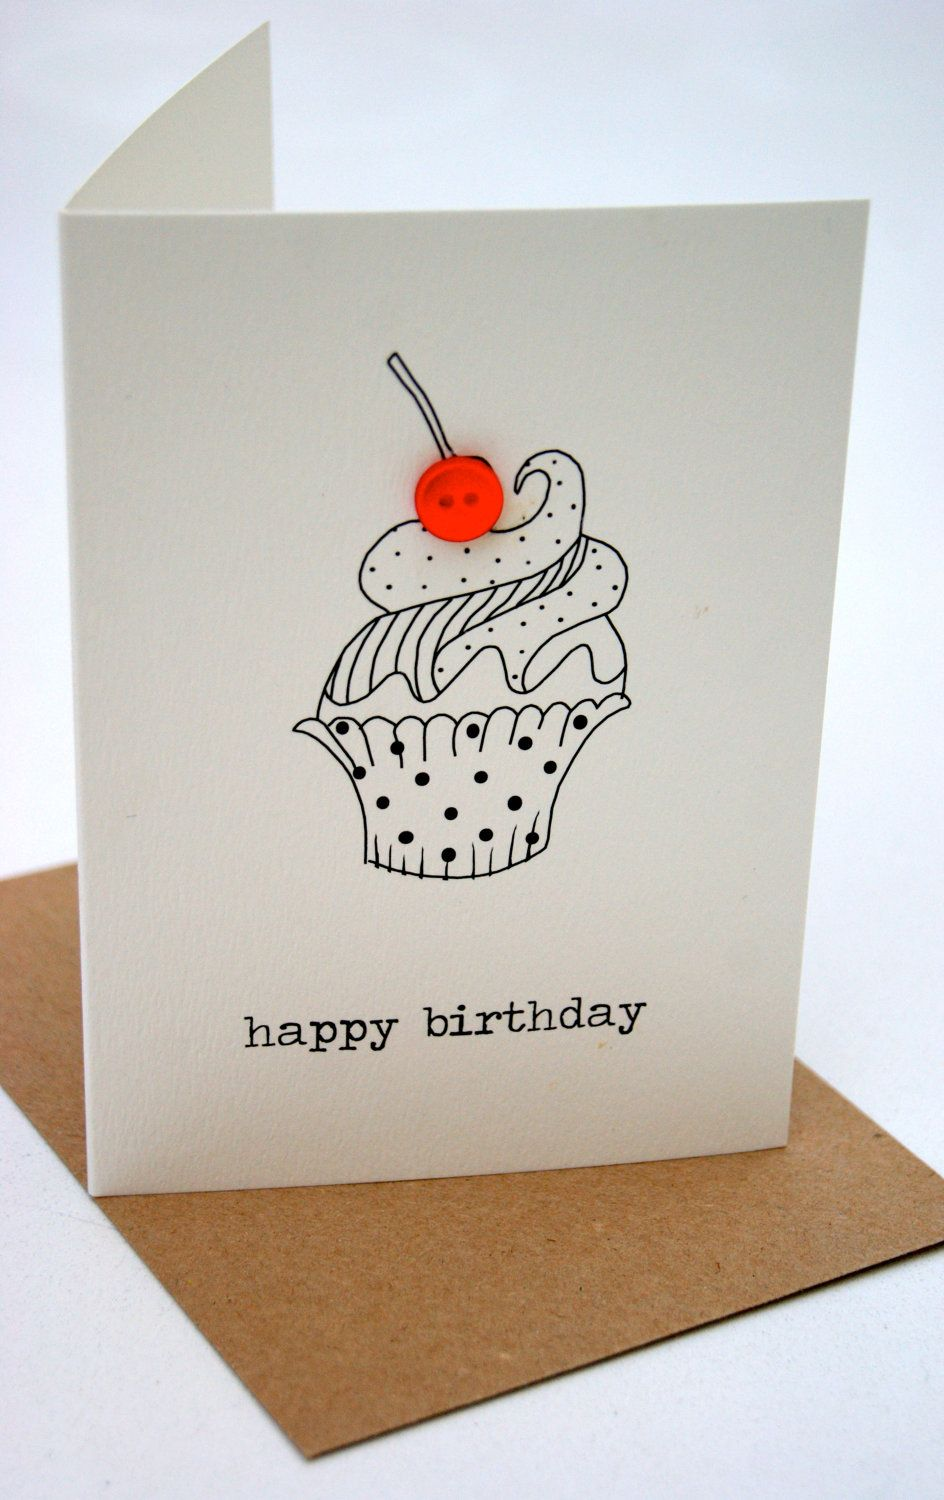 Happy birthday cupcake button box card happy birthday cupcakes happy birthday cupcake button box card greeting card kristyandbryce Image collections